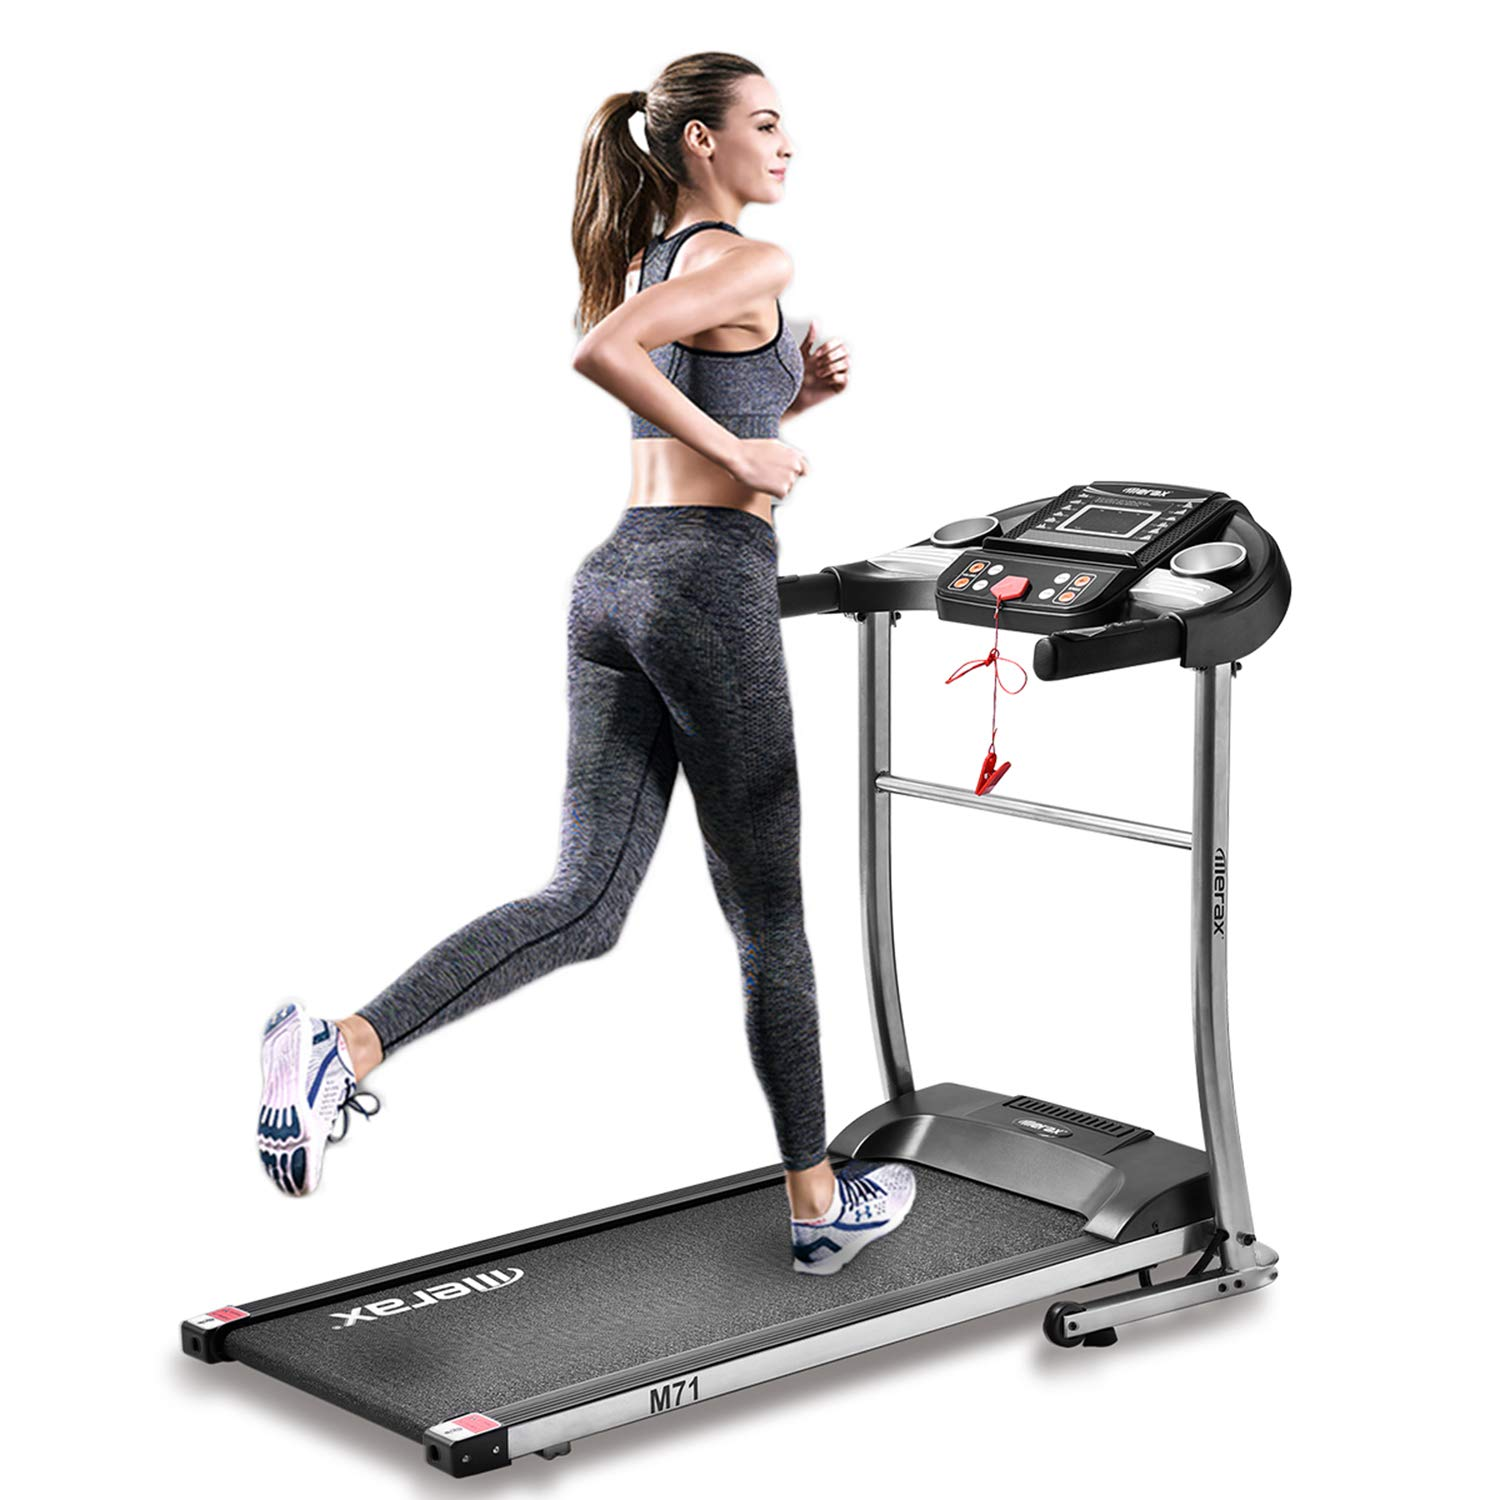 Merax Electric Folding Treadmill Motorized Running and Jogging Fitness Machine for Home Gym Silver